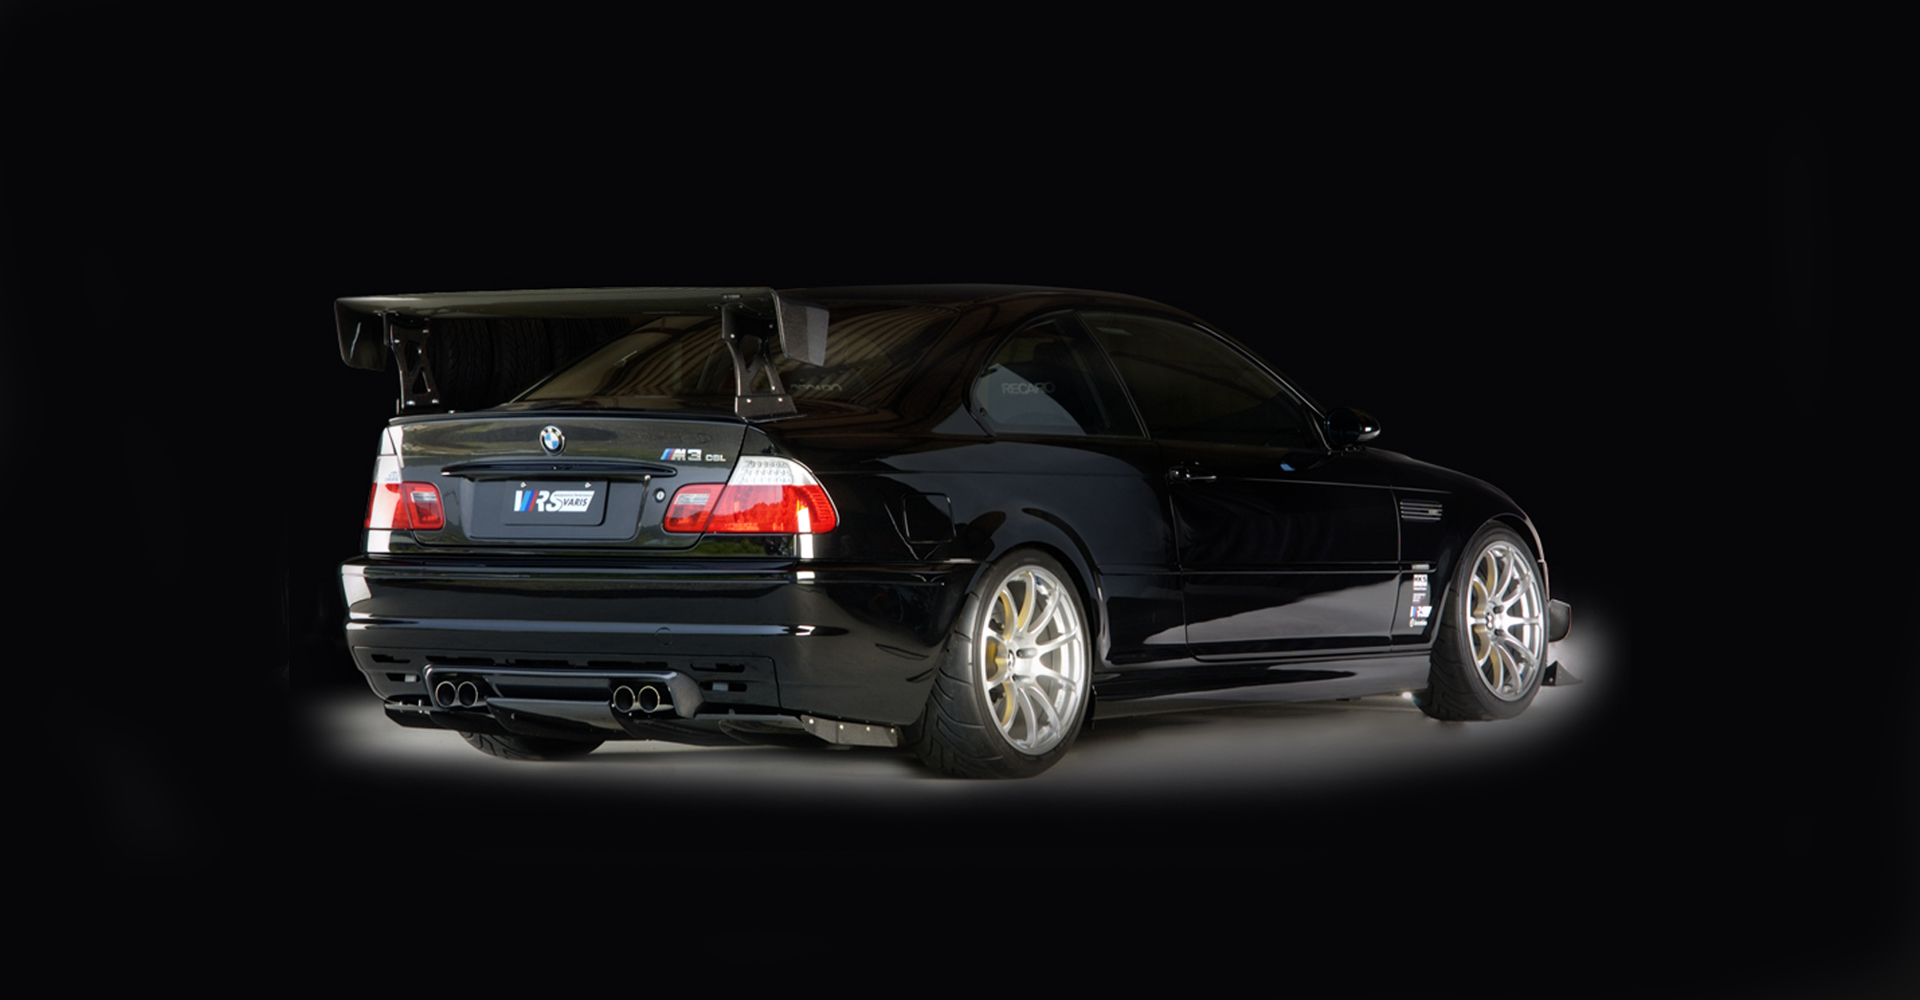 Vrs Bmw E46 M3 Circuit Version